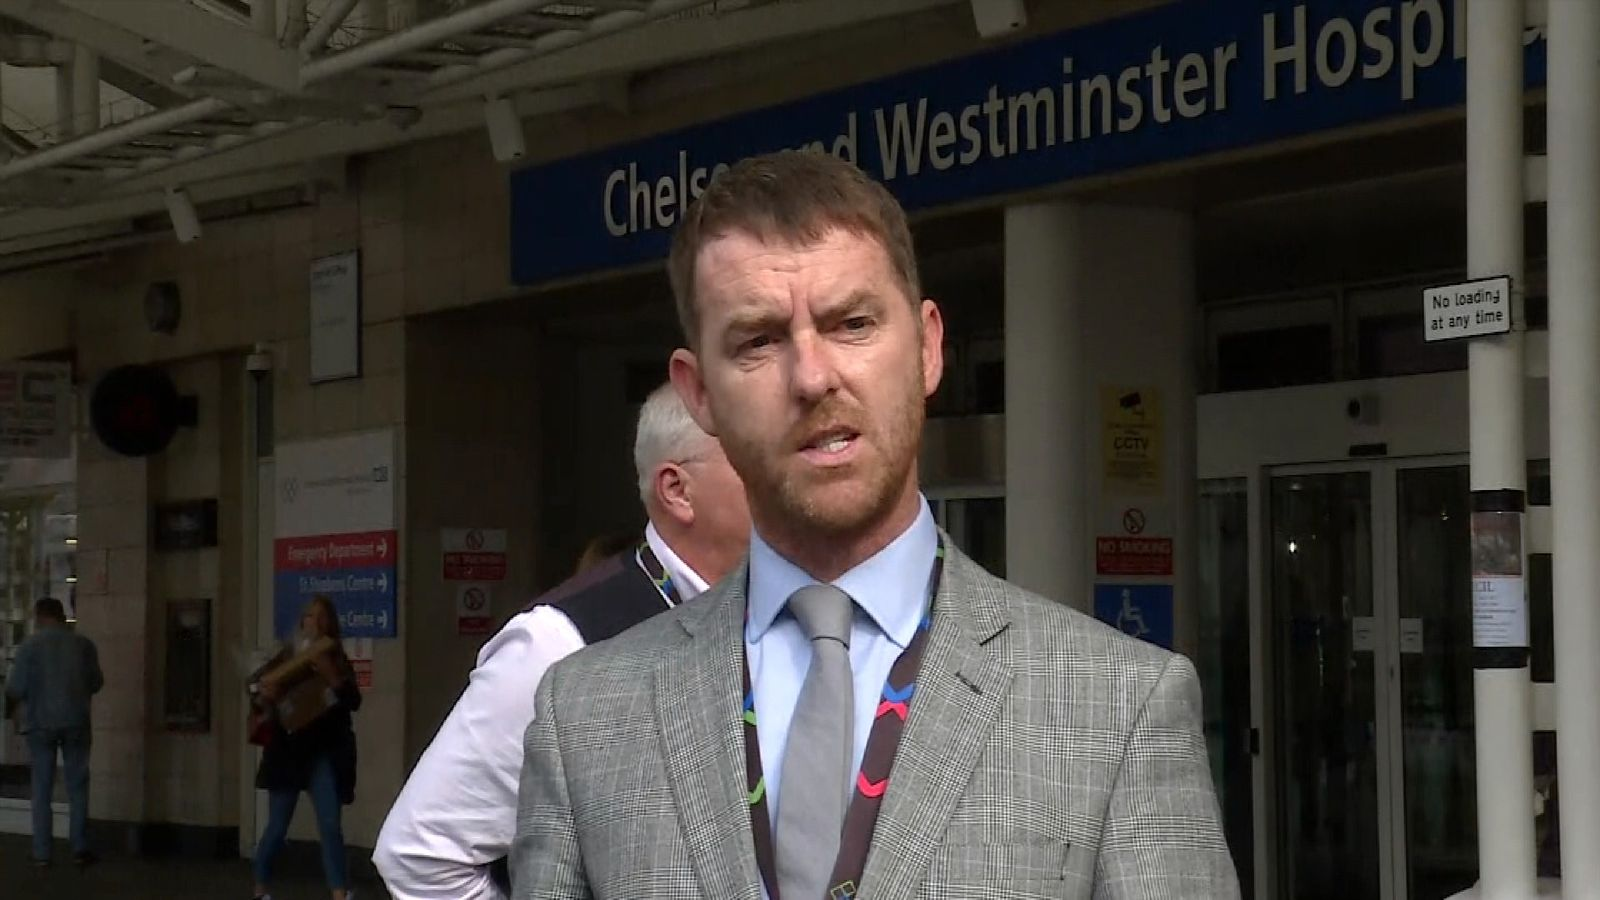 Chief Operating Officer at Chelsea & Westminster hospital gives update on situation following explosion at Parsons Green tube station